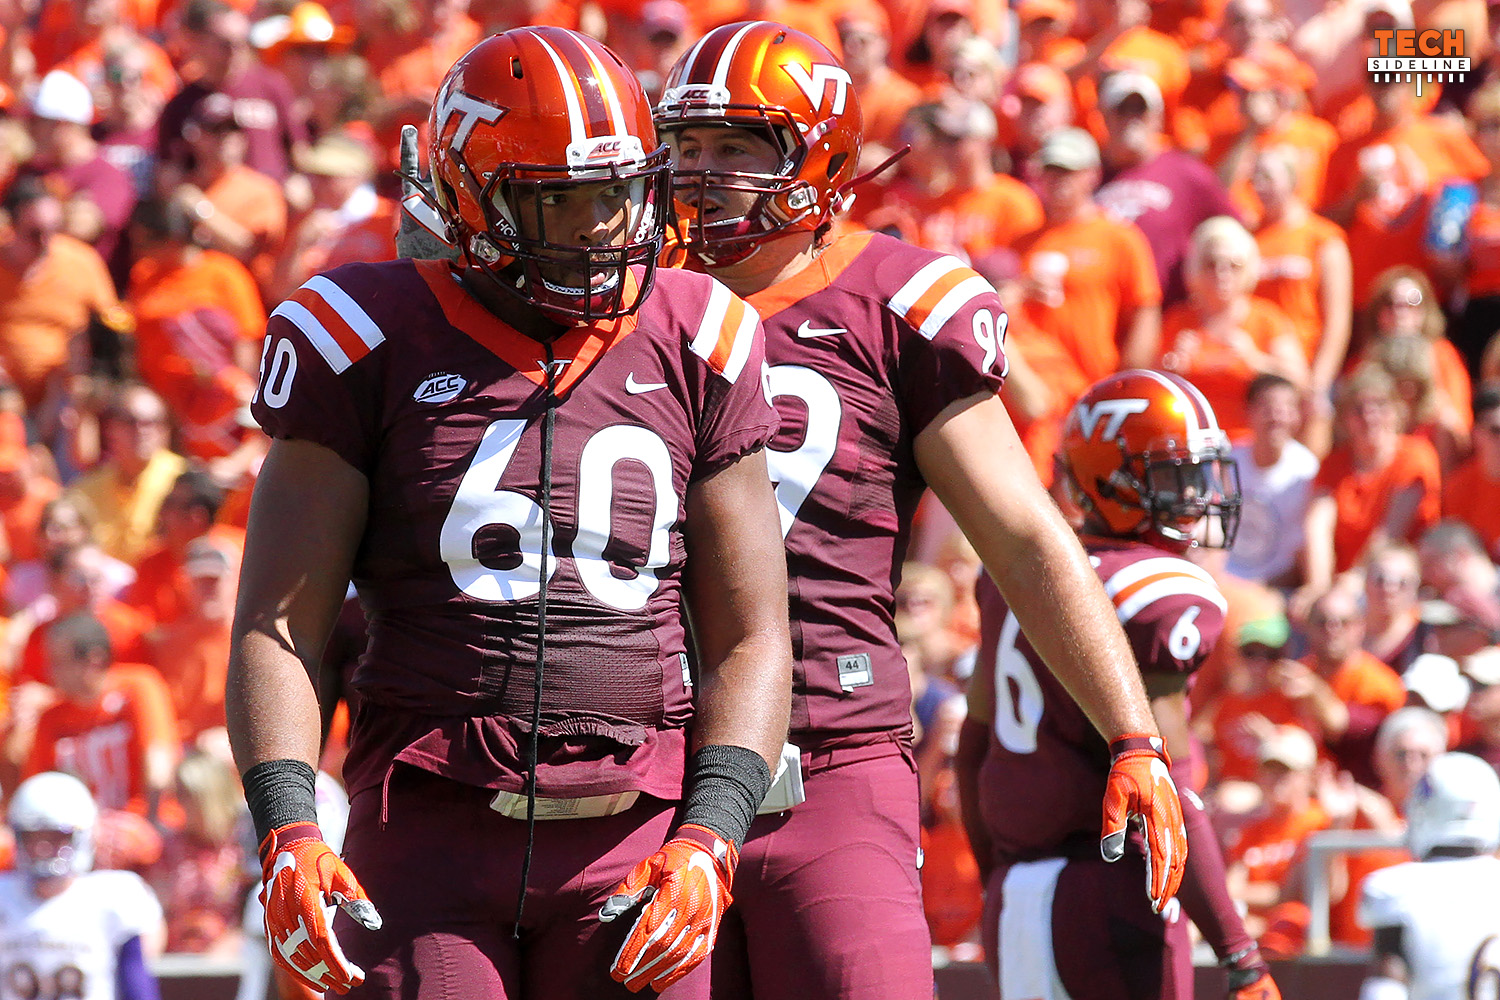 Hokies handle Pitt, stay atop Coastal division